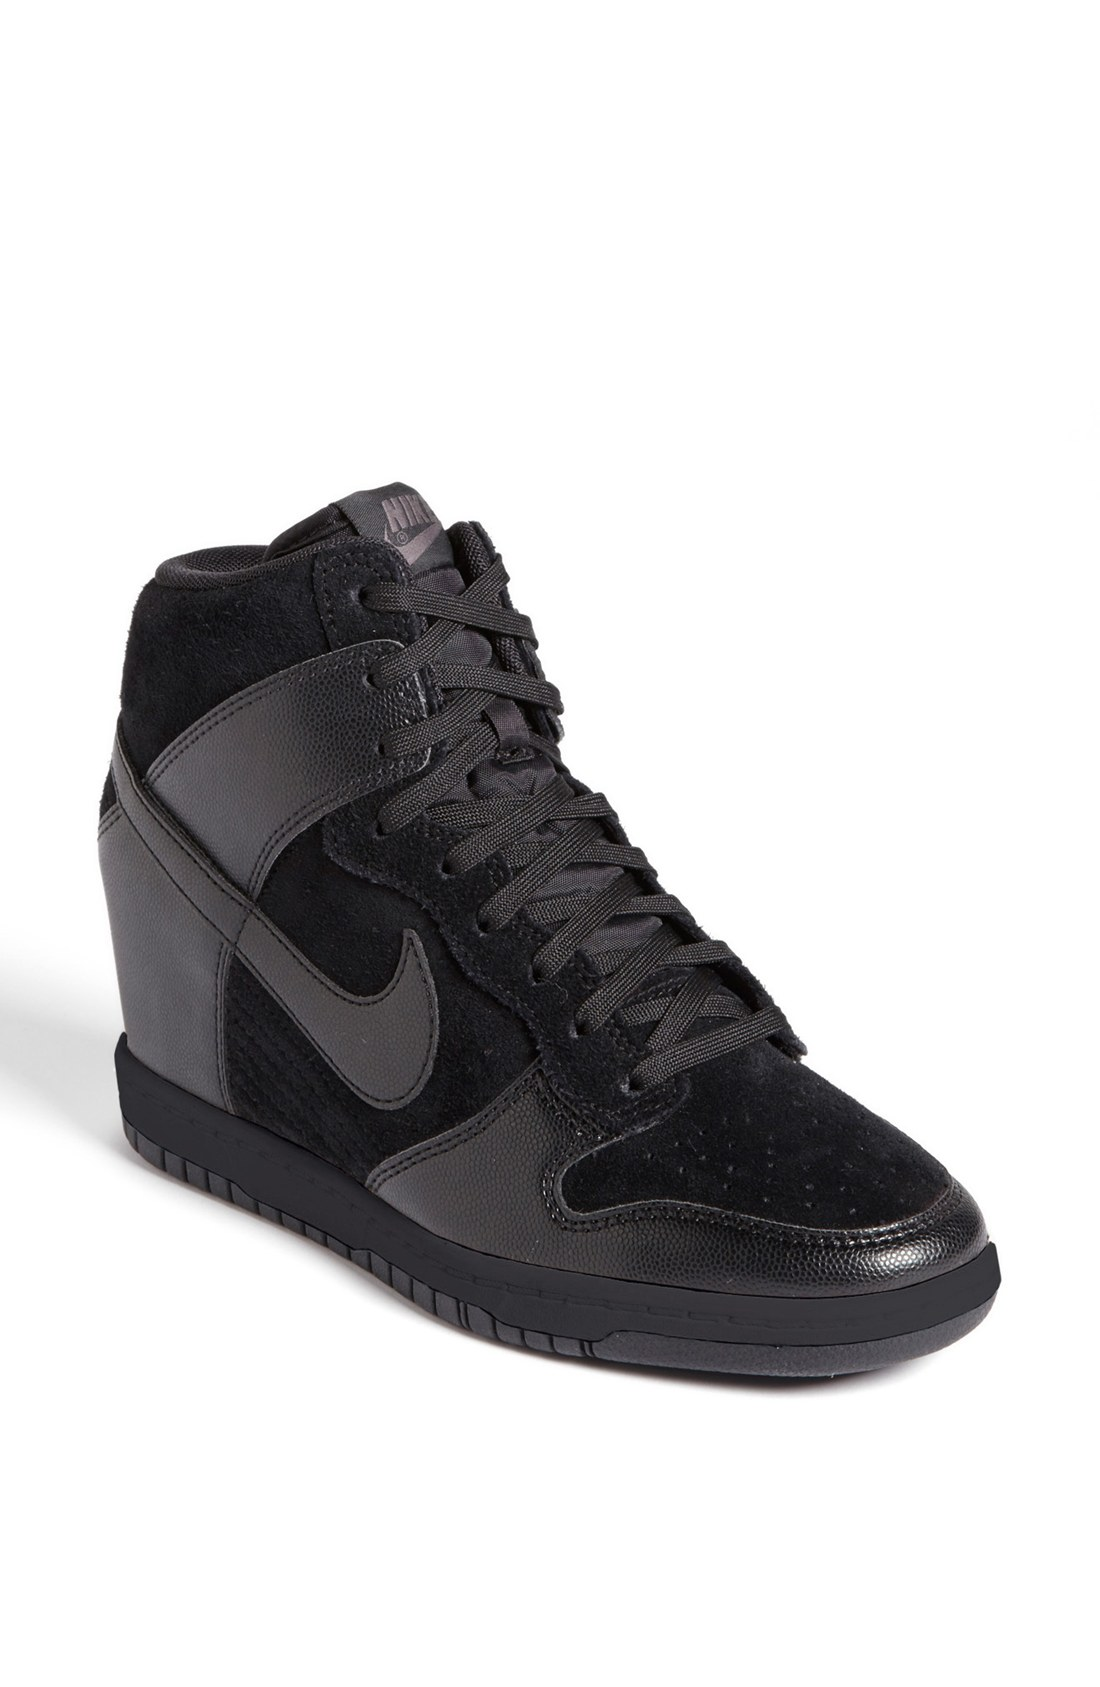 nike dunk sky hi in black lyst. Black Bedroom Furniture Sets. Home Design Ideas